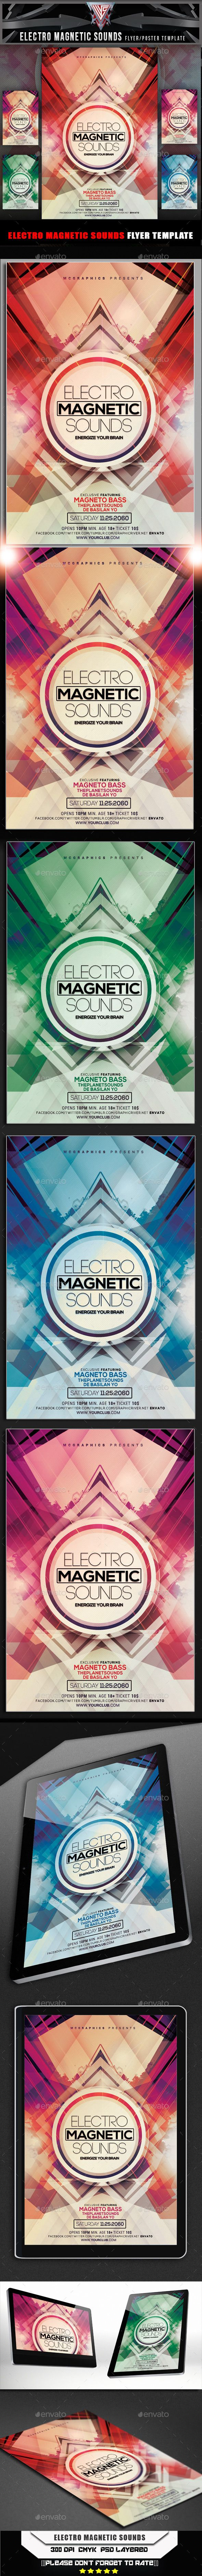 Electro Magnetic Sounds Flyer Template — Photoshop PSD #halloween #template • Available here → https://graphicriver.net/item/electro-magnetic-sounds-flyer-template/10695074?ref=pxcr